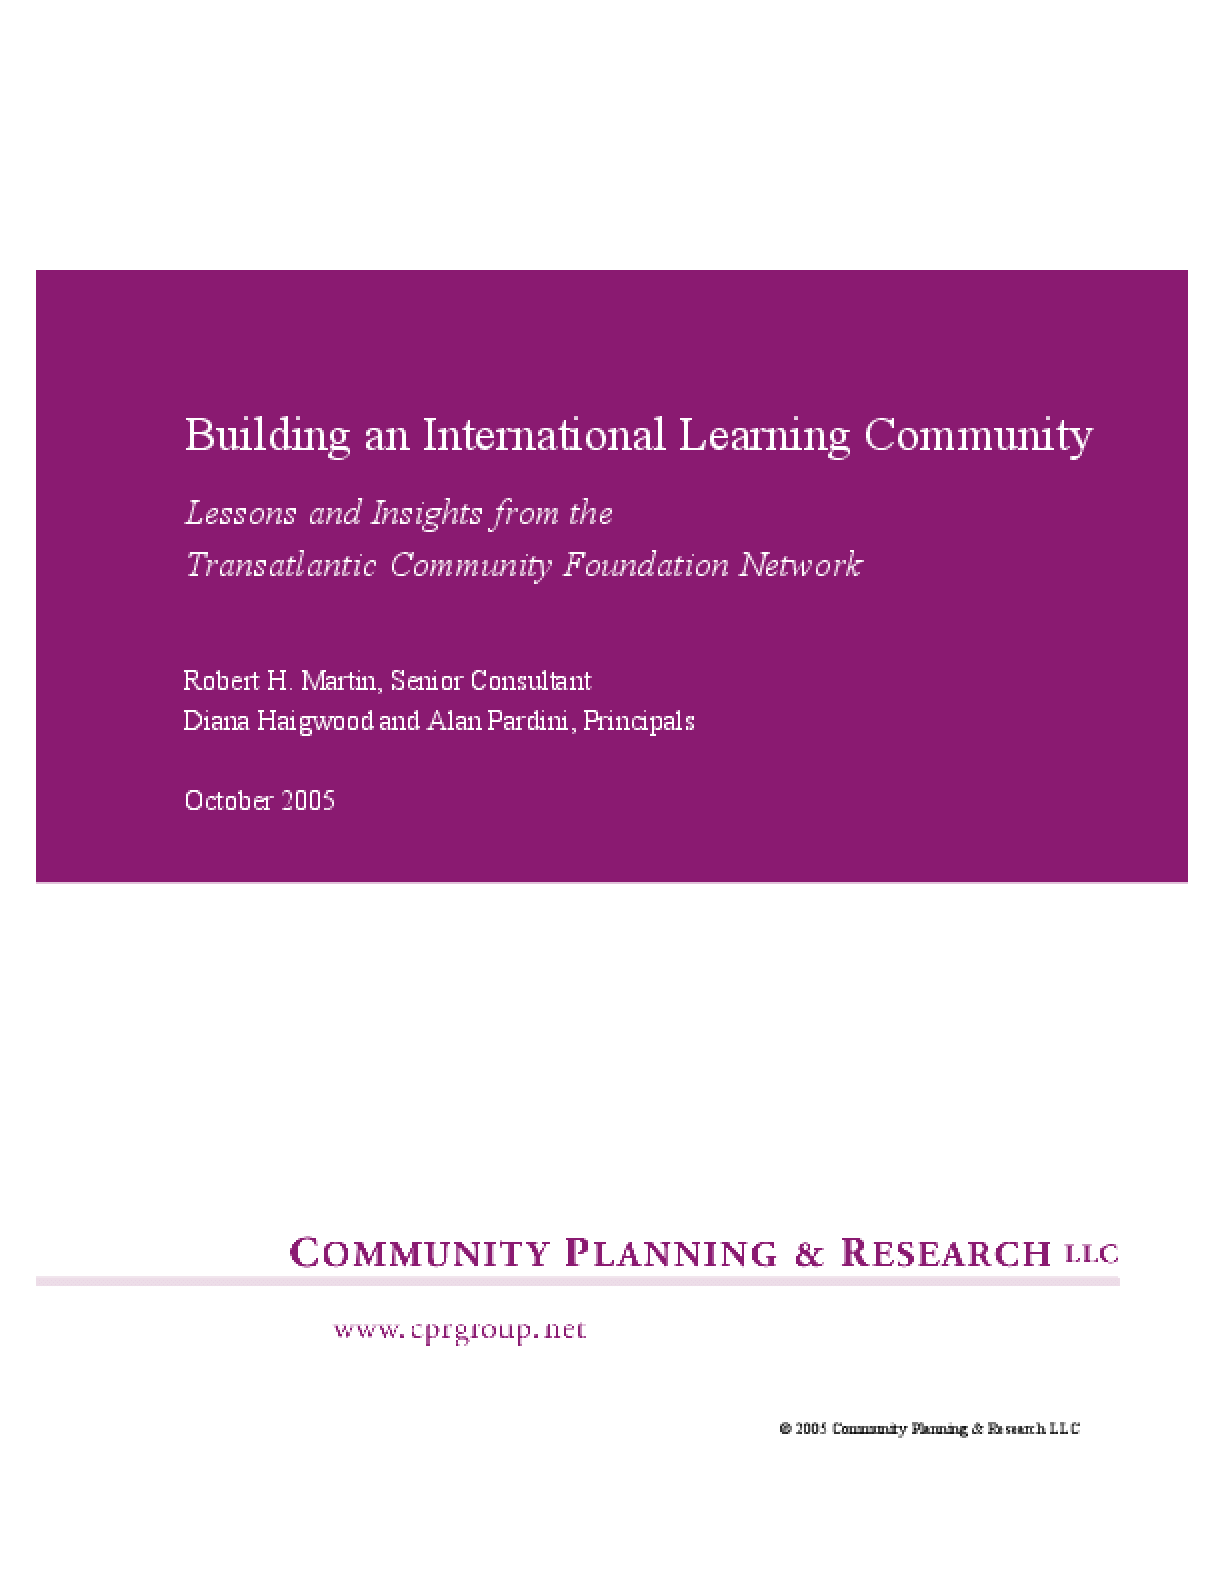 Building an International Learning Community: Lessons and Insights From theTransatlantic Community Foundation Network